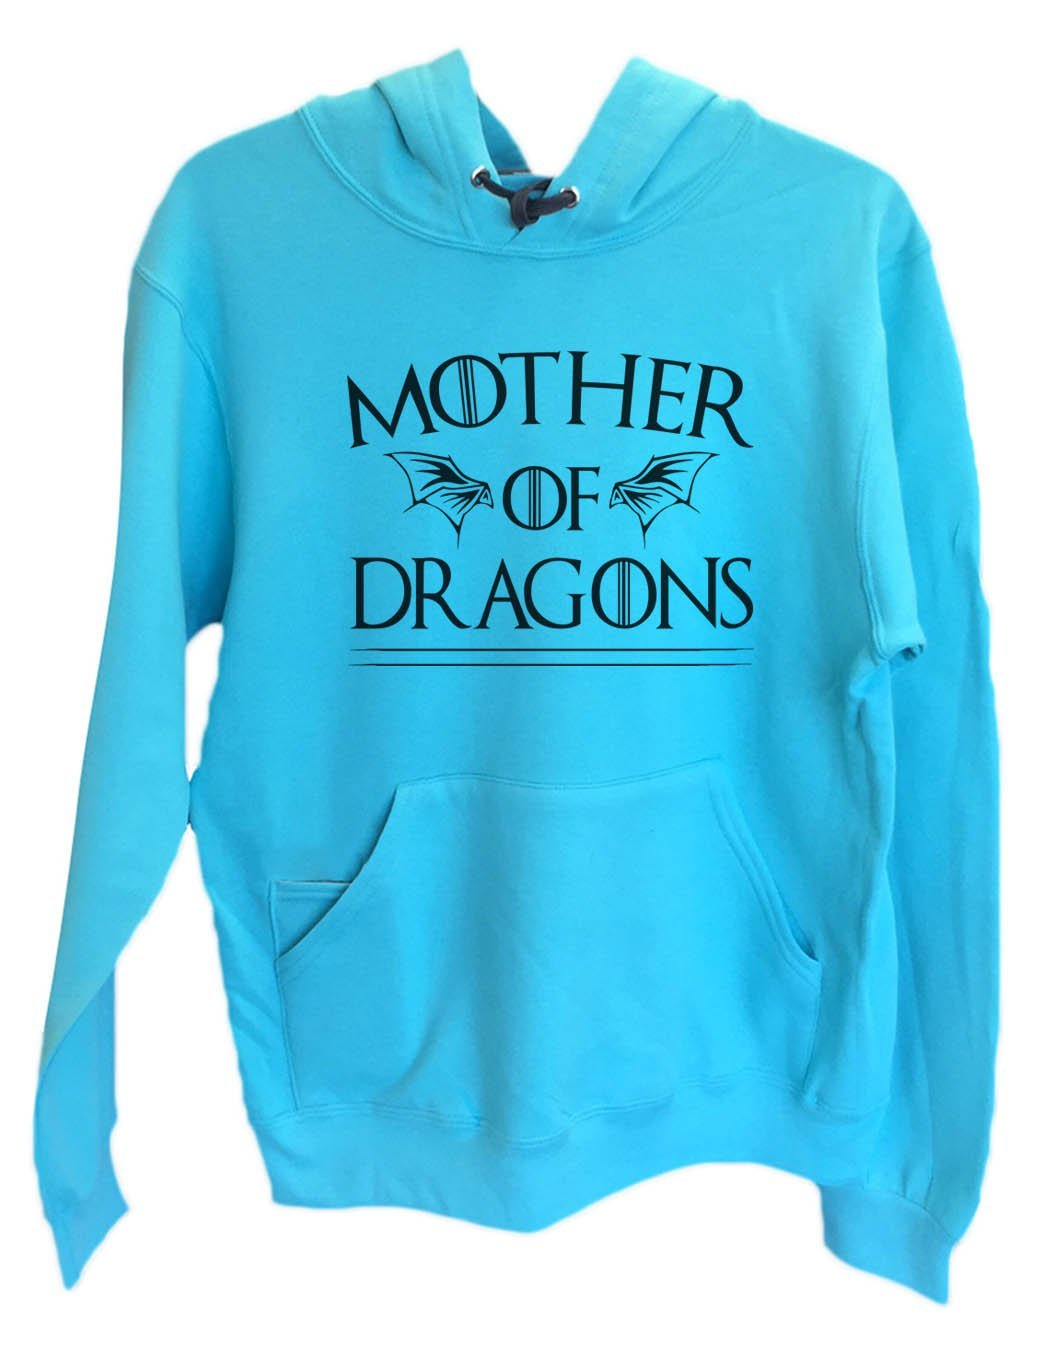 UNISEX HOODIE - Mother Of Dragons Game Of Thrones - FUNNY MENS AND WOMENS HOODED SWEATSHIRTS - 2282 Funny Shirt Small / Turquoise